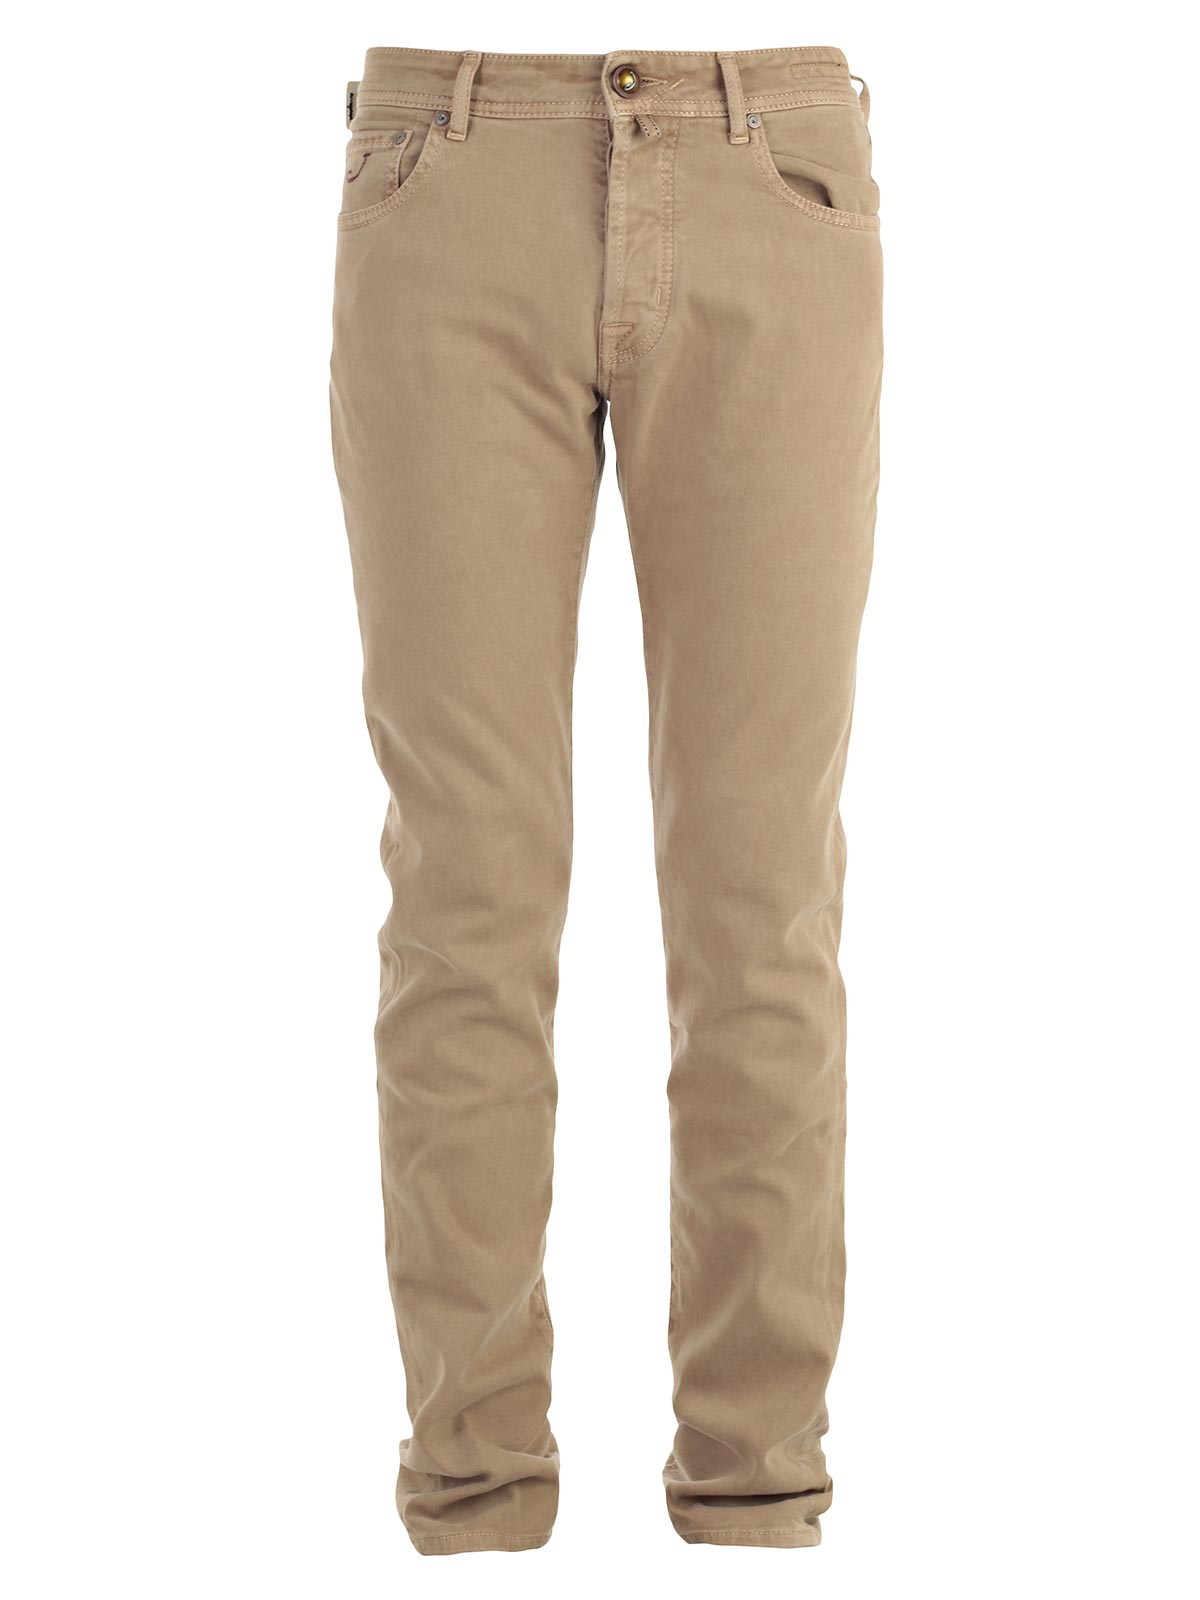 Picture of JACOB COHEN TROUSERS PANTALONE COMFORT T.CAPO 5TASCHE